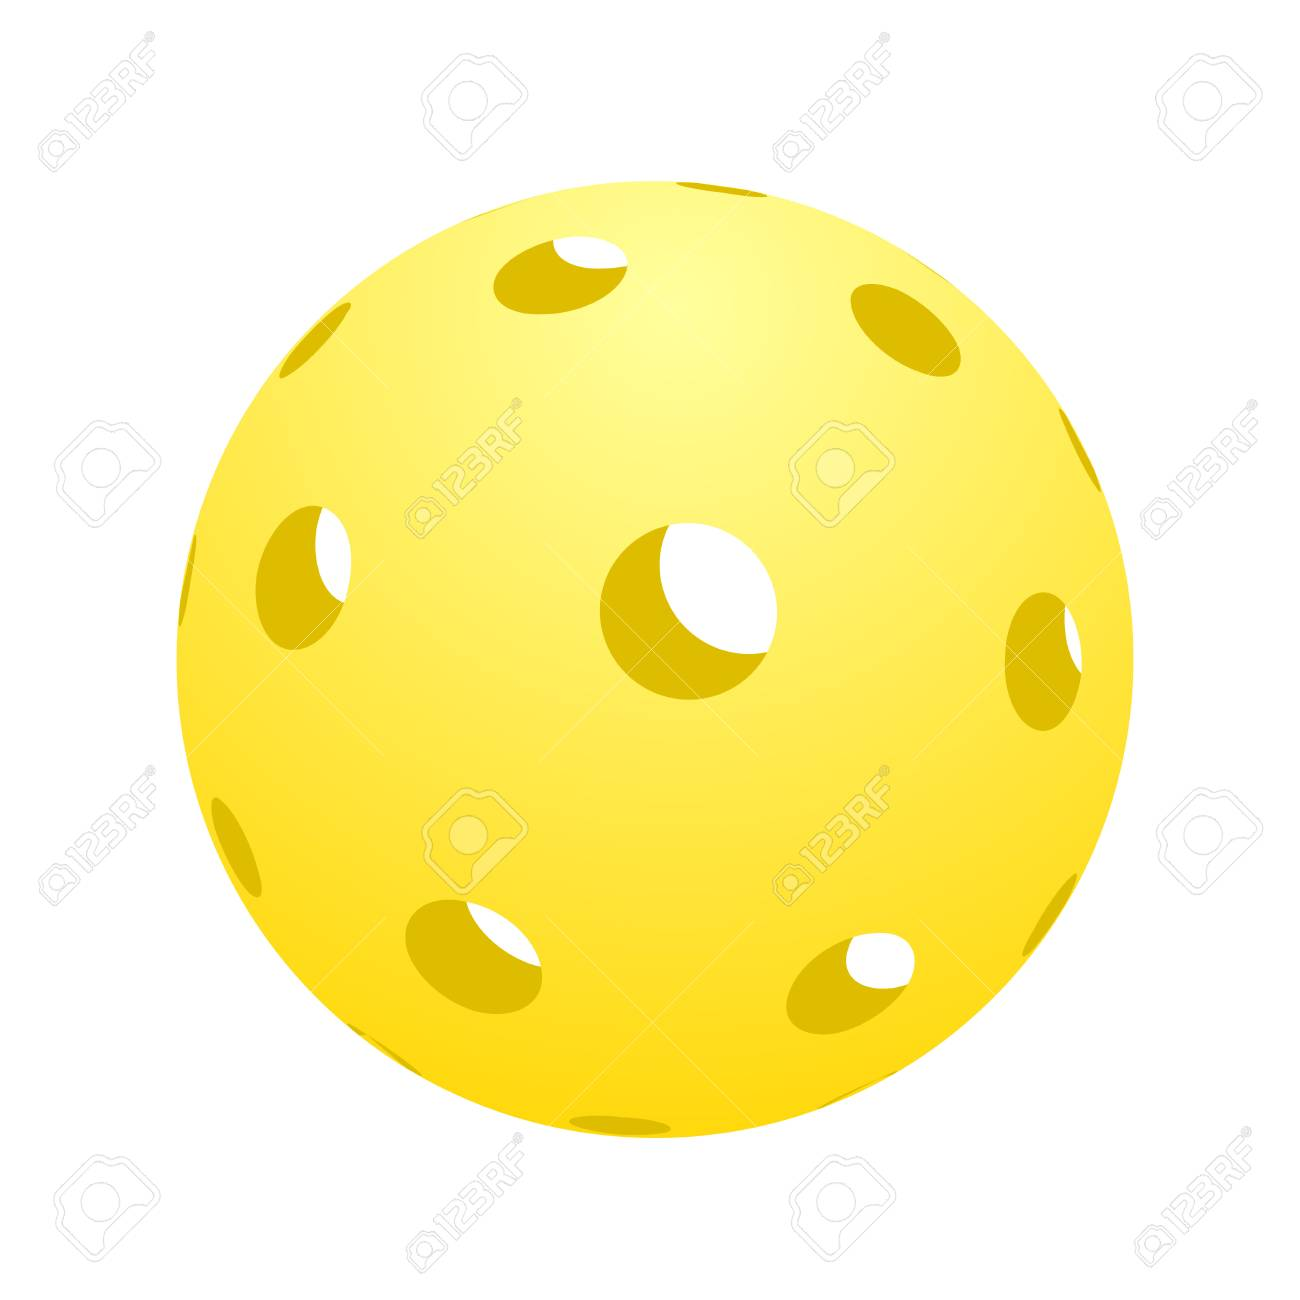 hight resolution of ball of pickle ball icon illustration stock vector 93840616